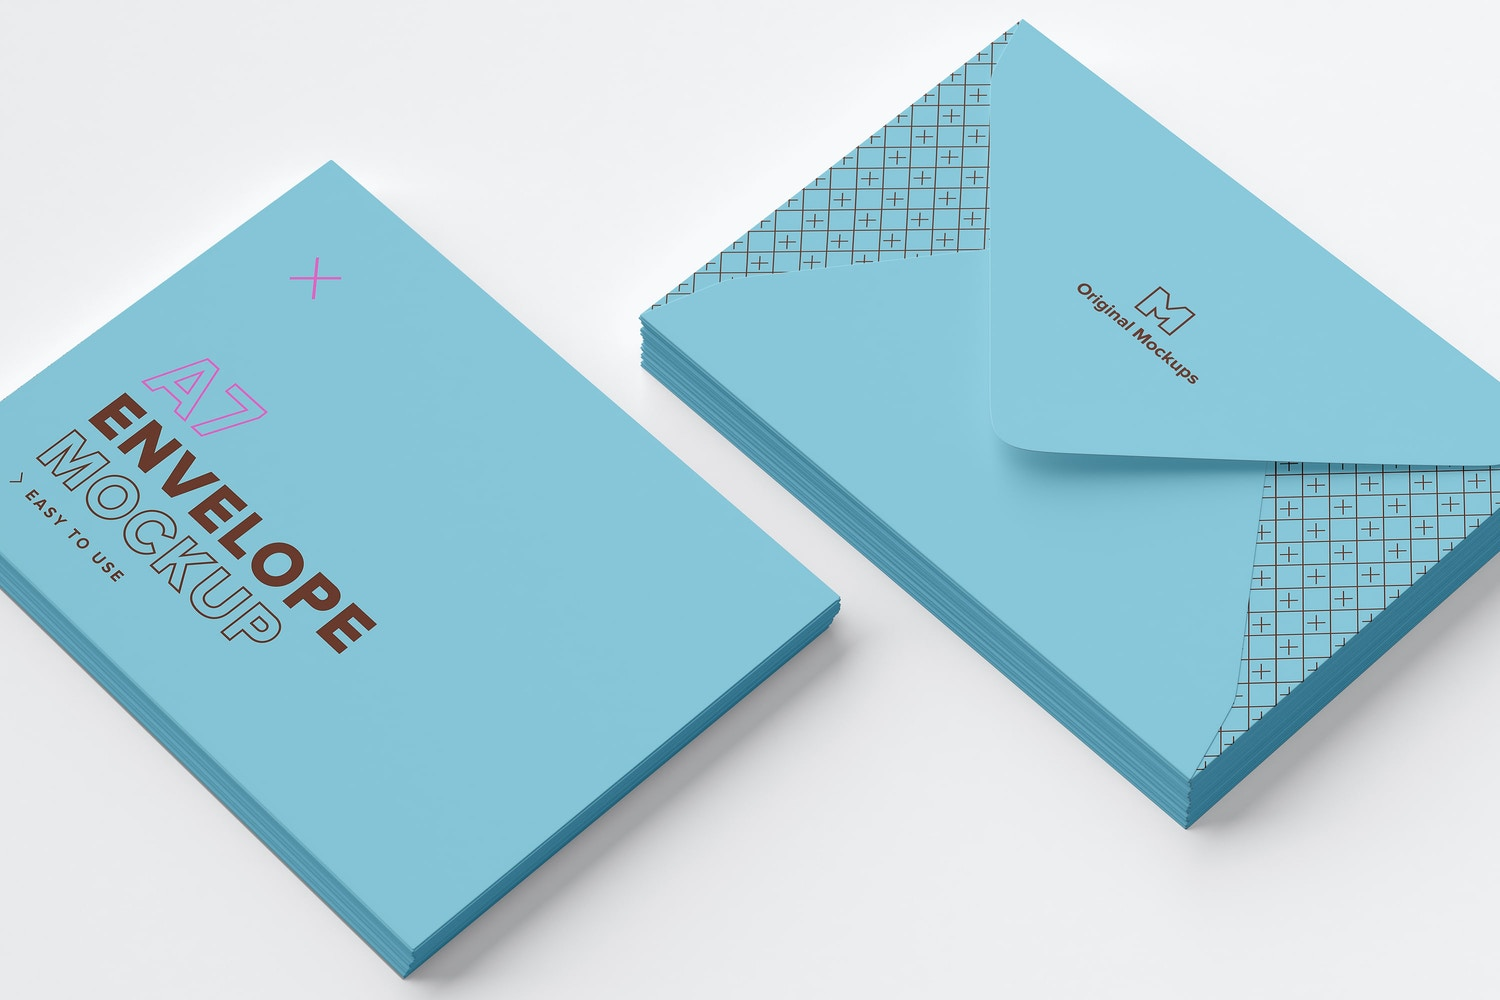 A7 Envelope Stacks Mockup 03 by Original Mockups on Original Mockups